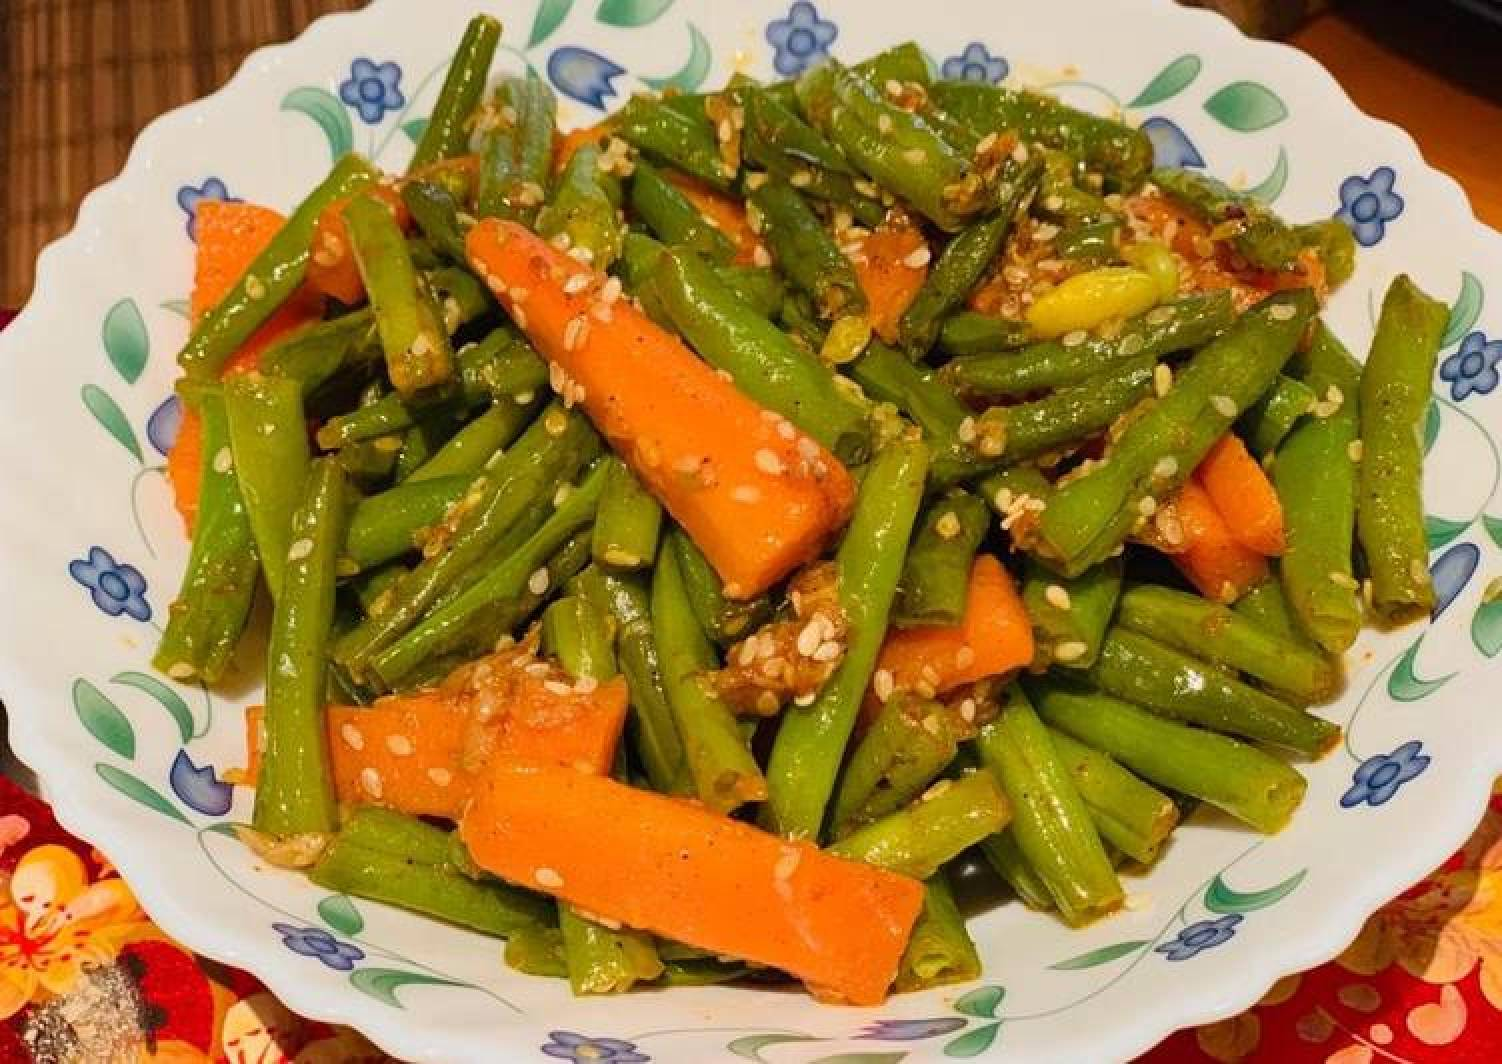 Beans and carrots stir fry